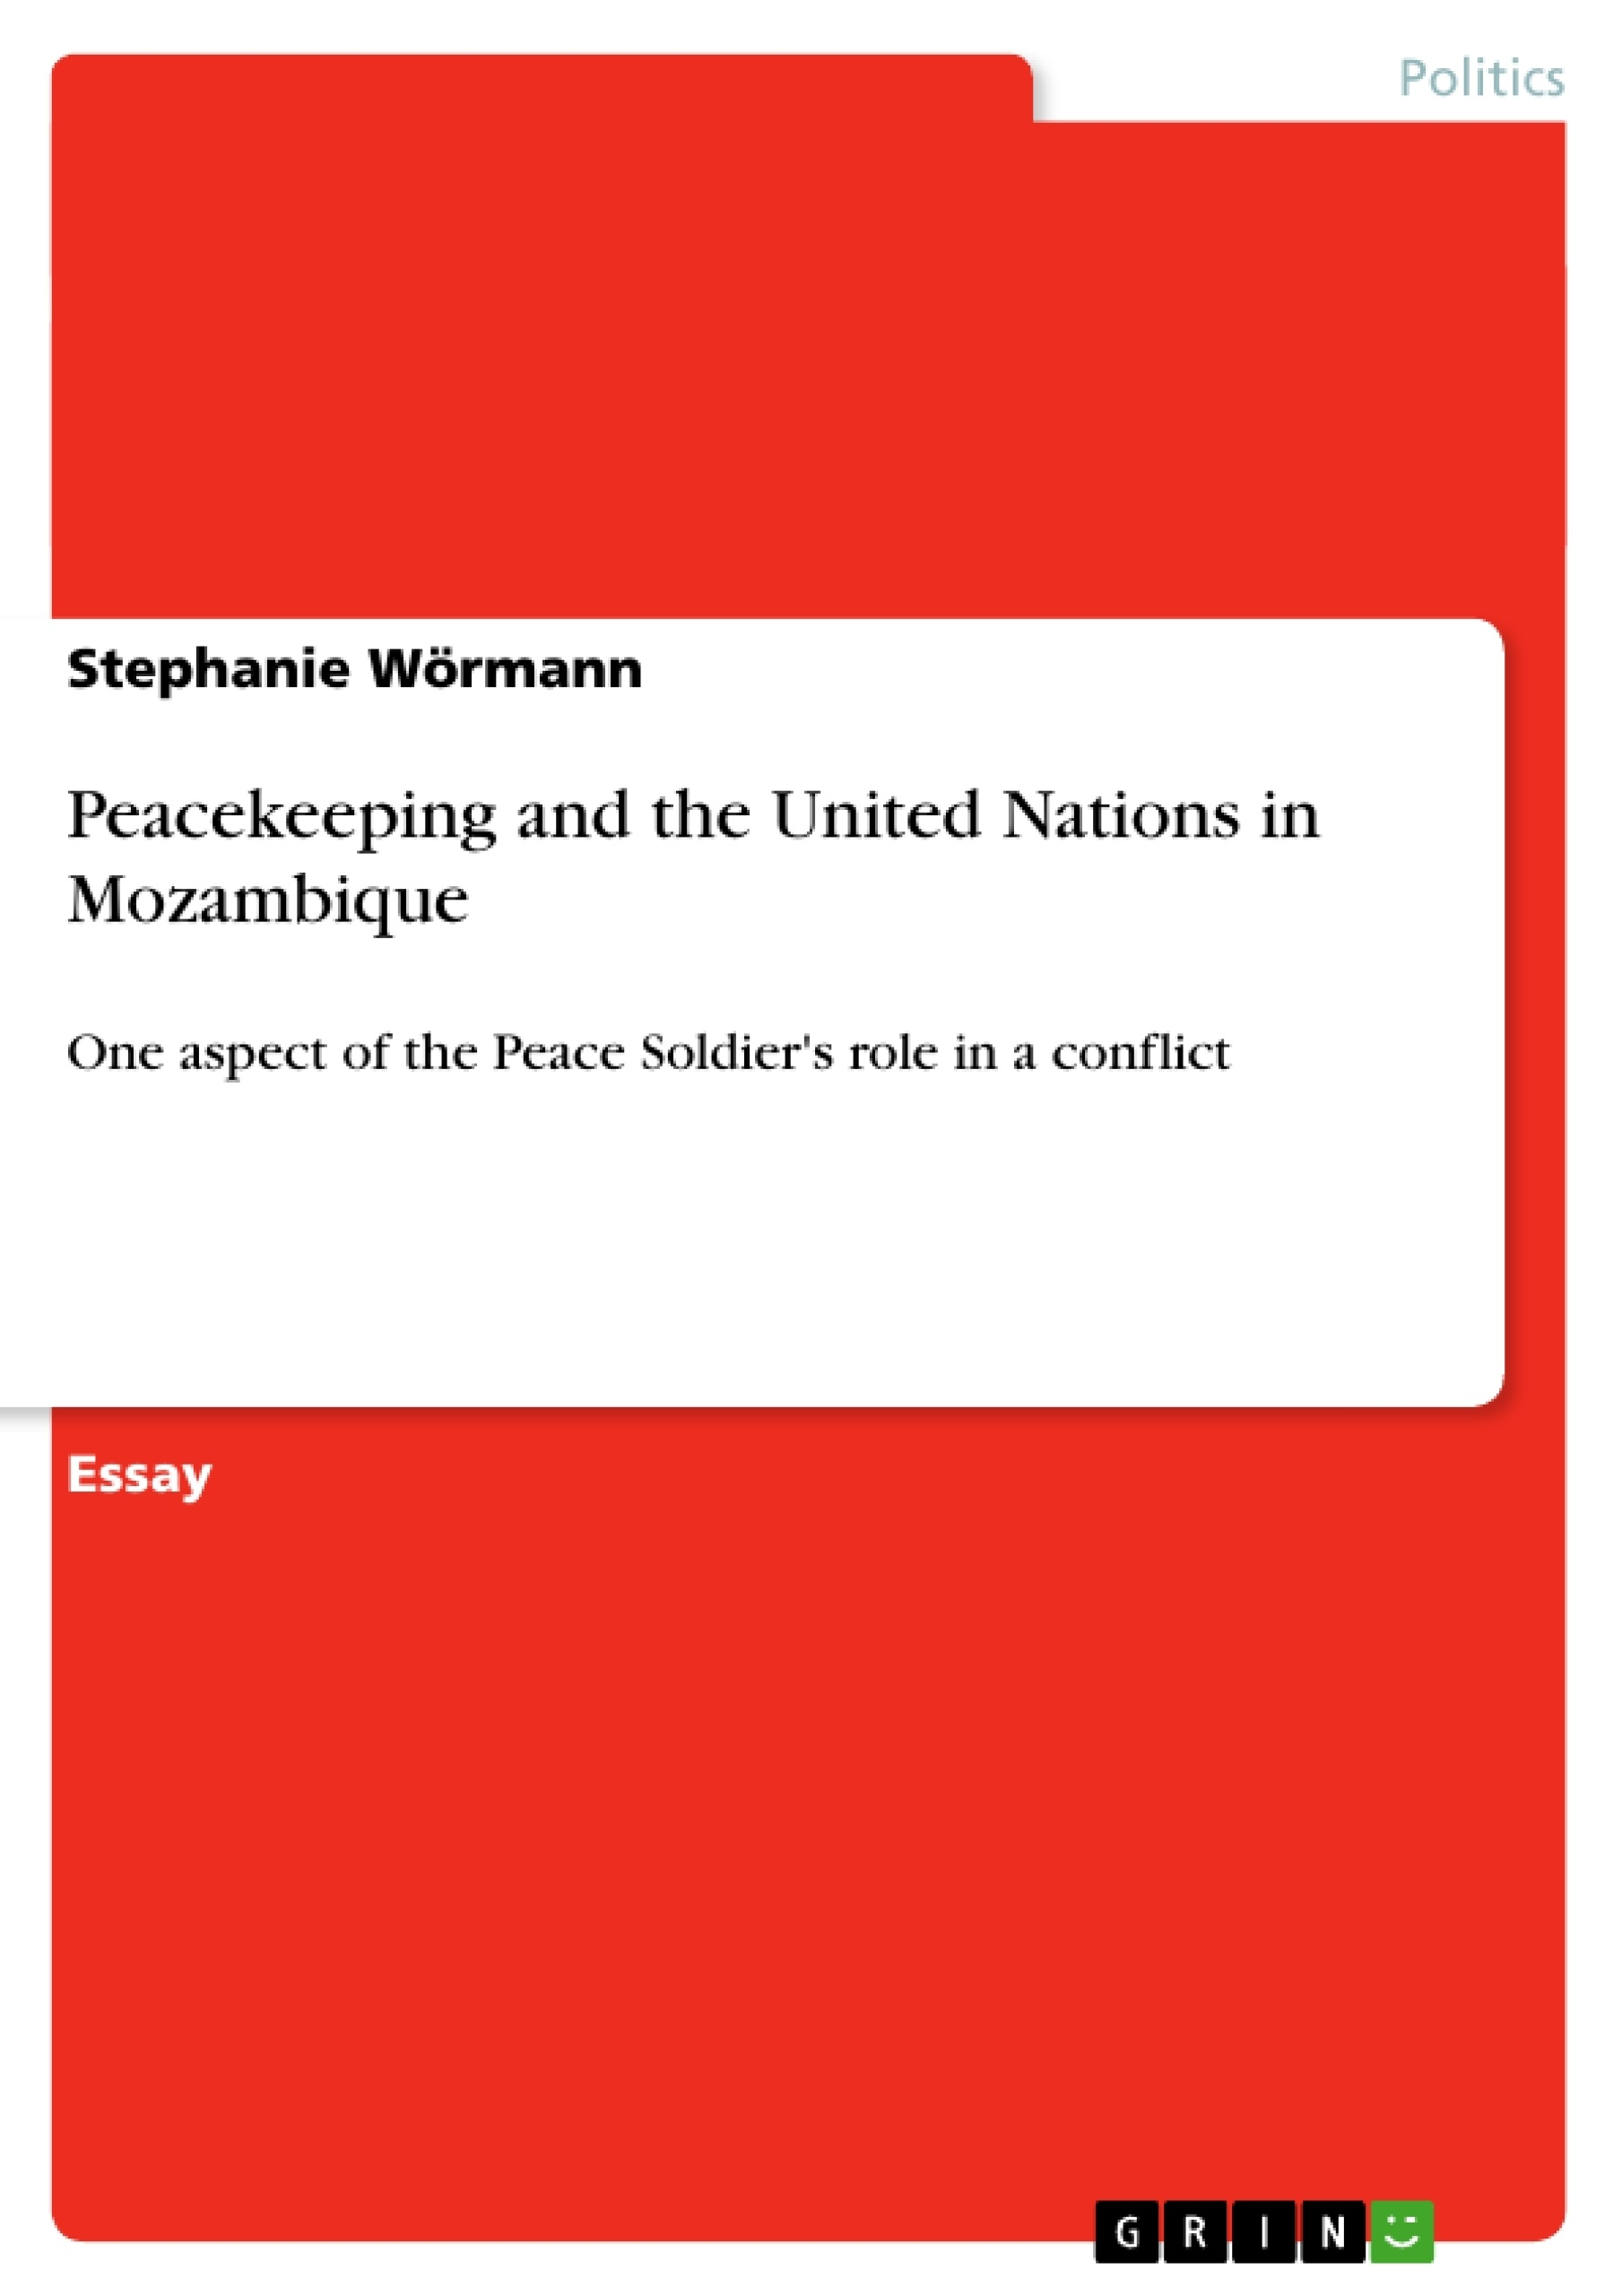 thesis on security council Building upon the conclusions of an earlier national security council paper (nsc-20/4) office of the historian, bureau of public affairs.